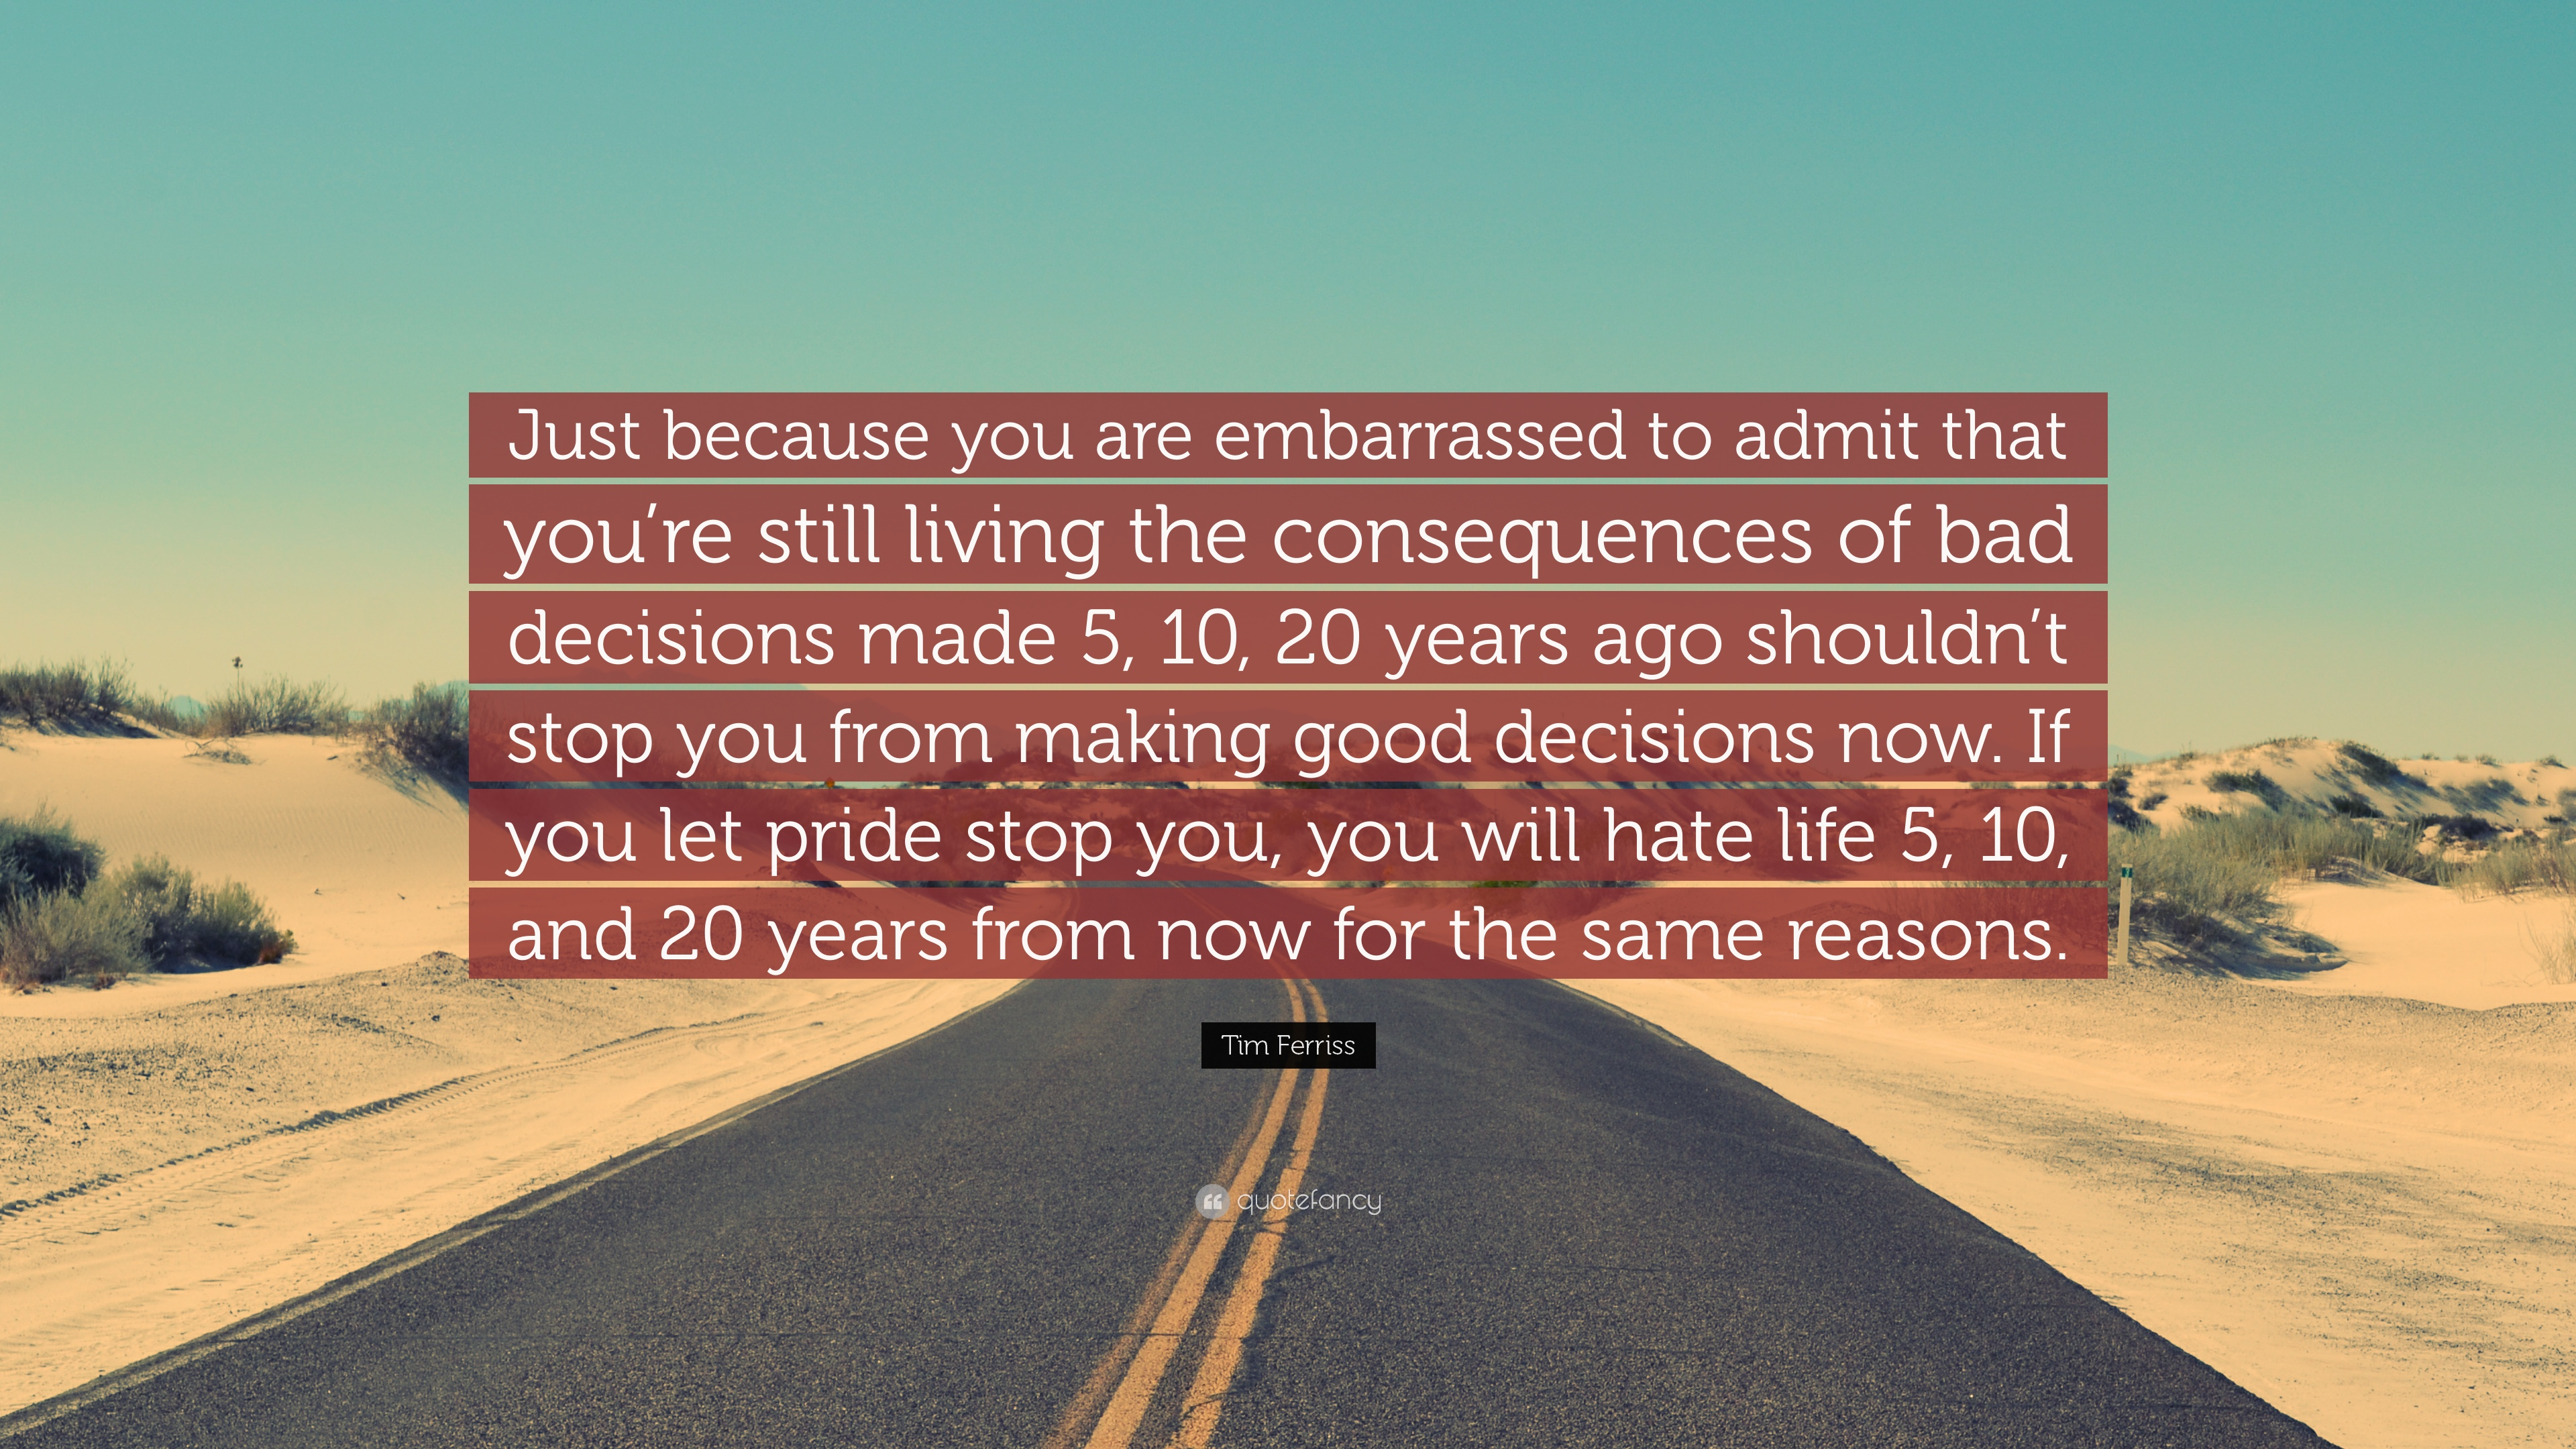 tim ferriss quote just because you are embarrassed to admit that tim ferriss quote just because you are embarrassed to admit that you re